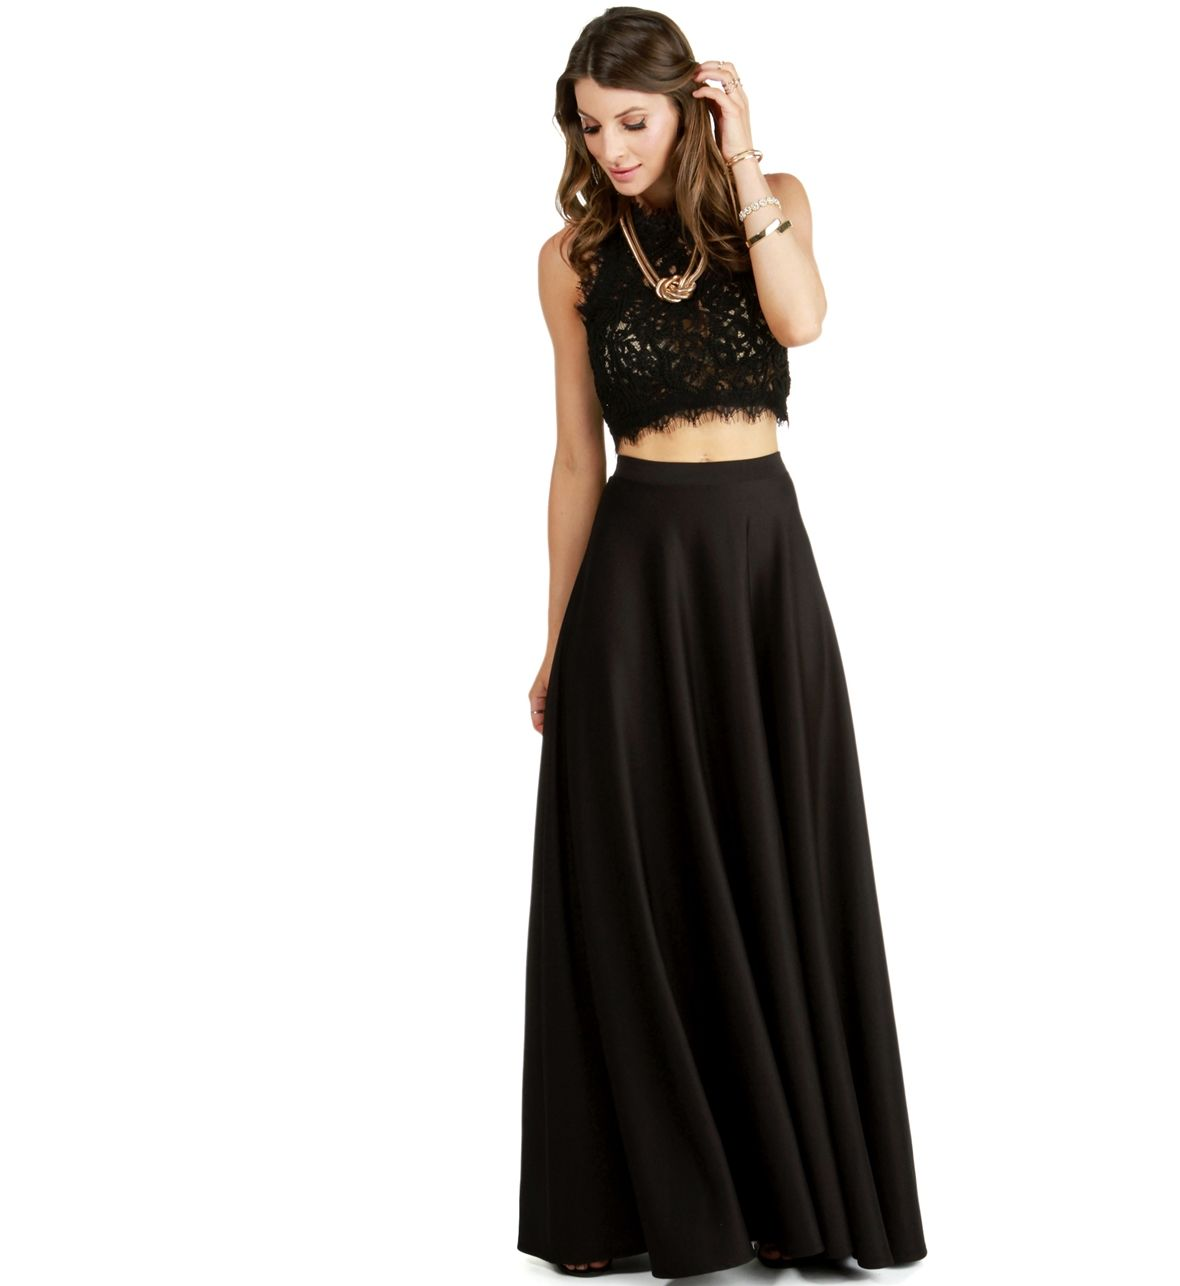 1a90a6b7bd Black Grand Scuba Maxi Skirt | blackss | Skirts, Fashion outfits ...